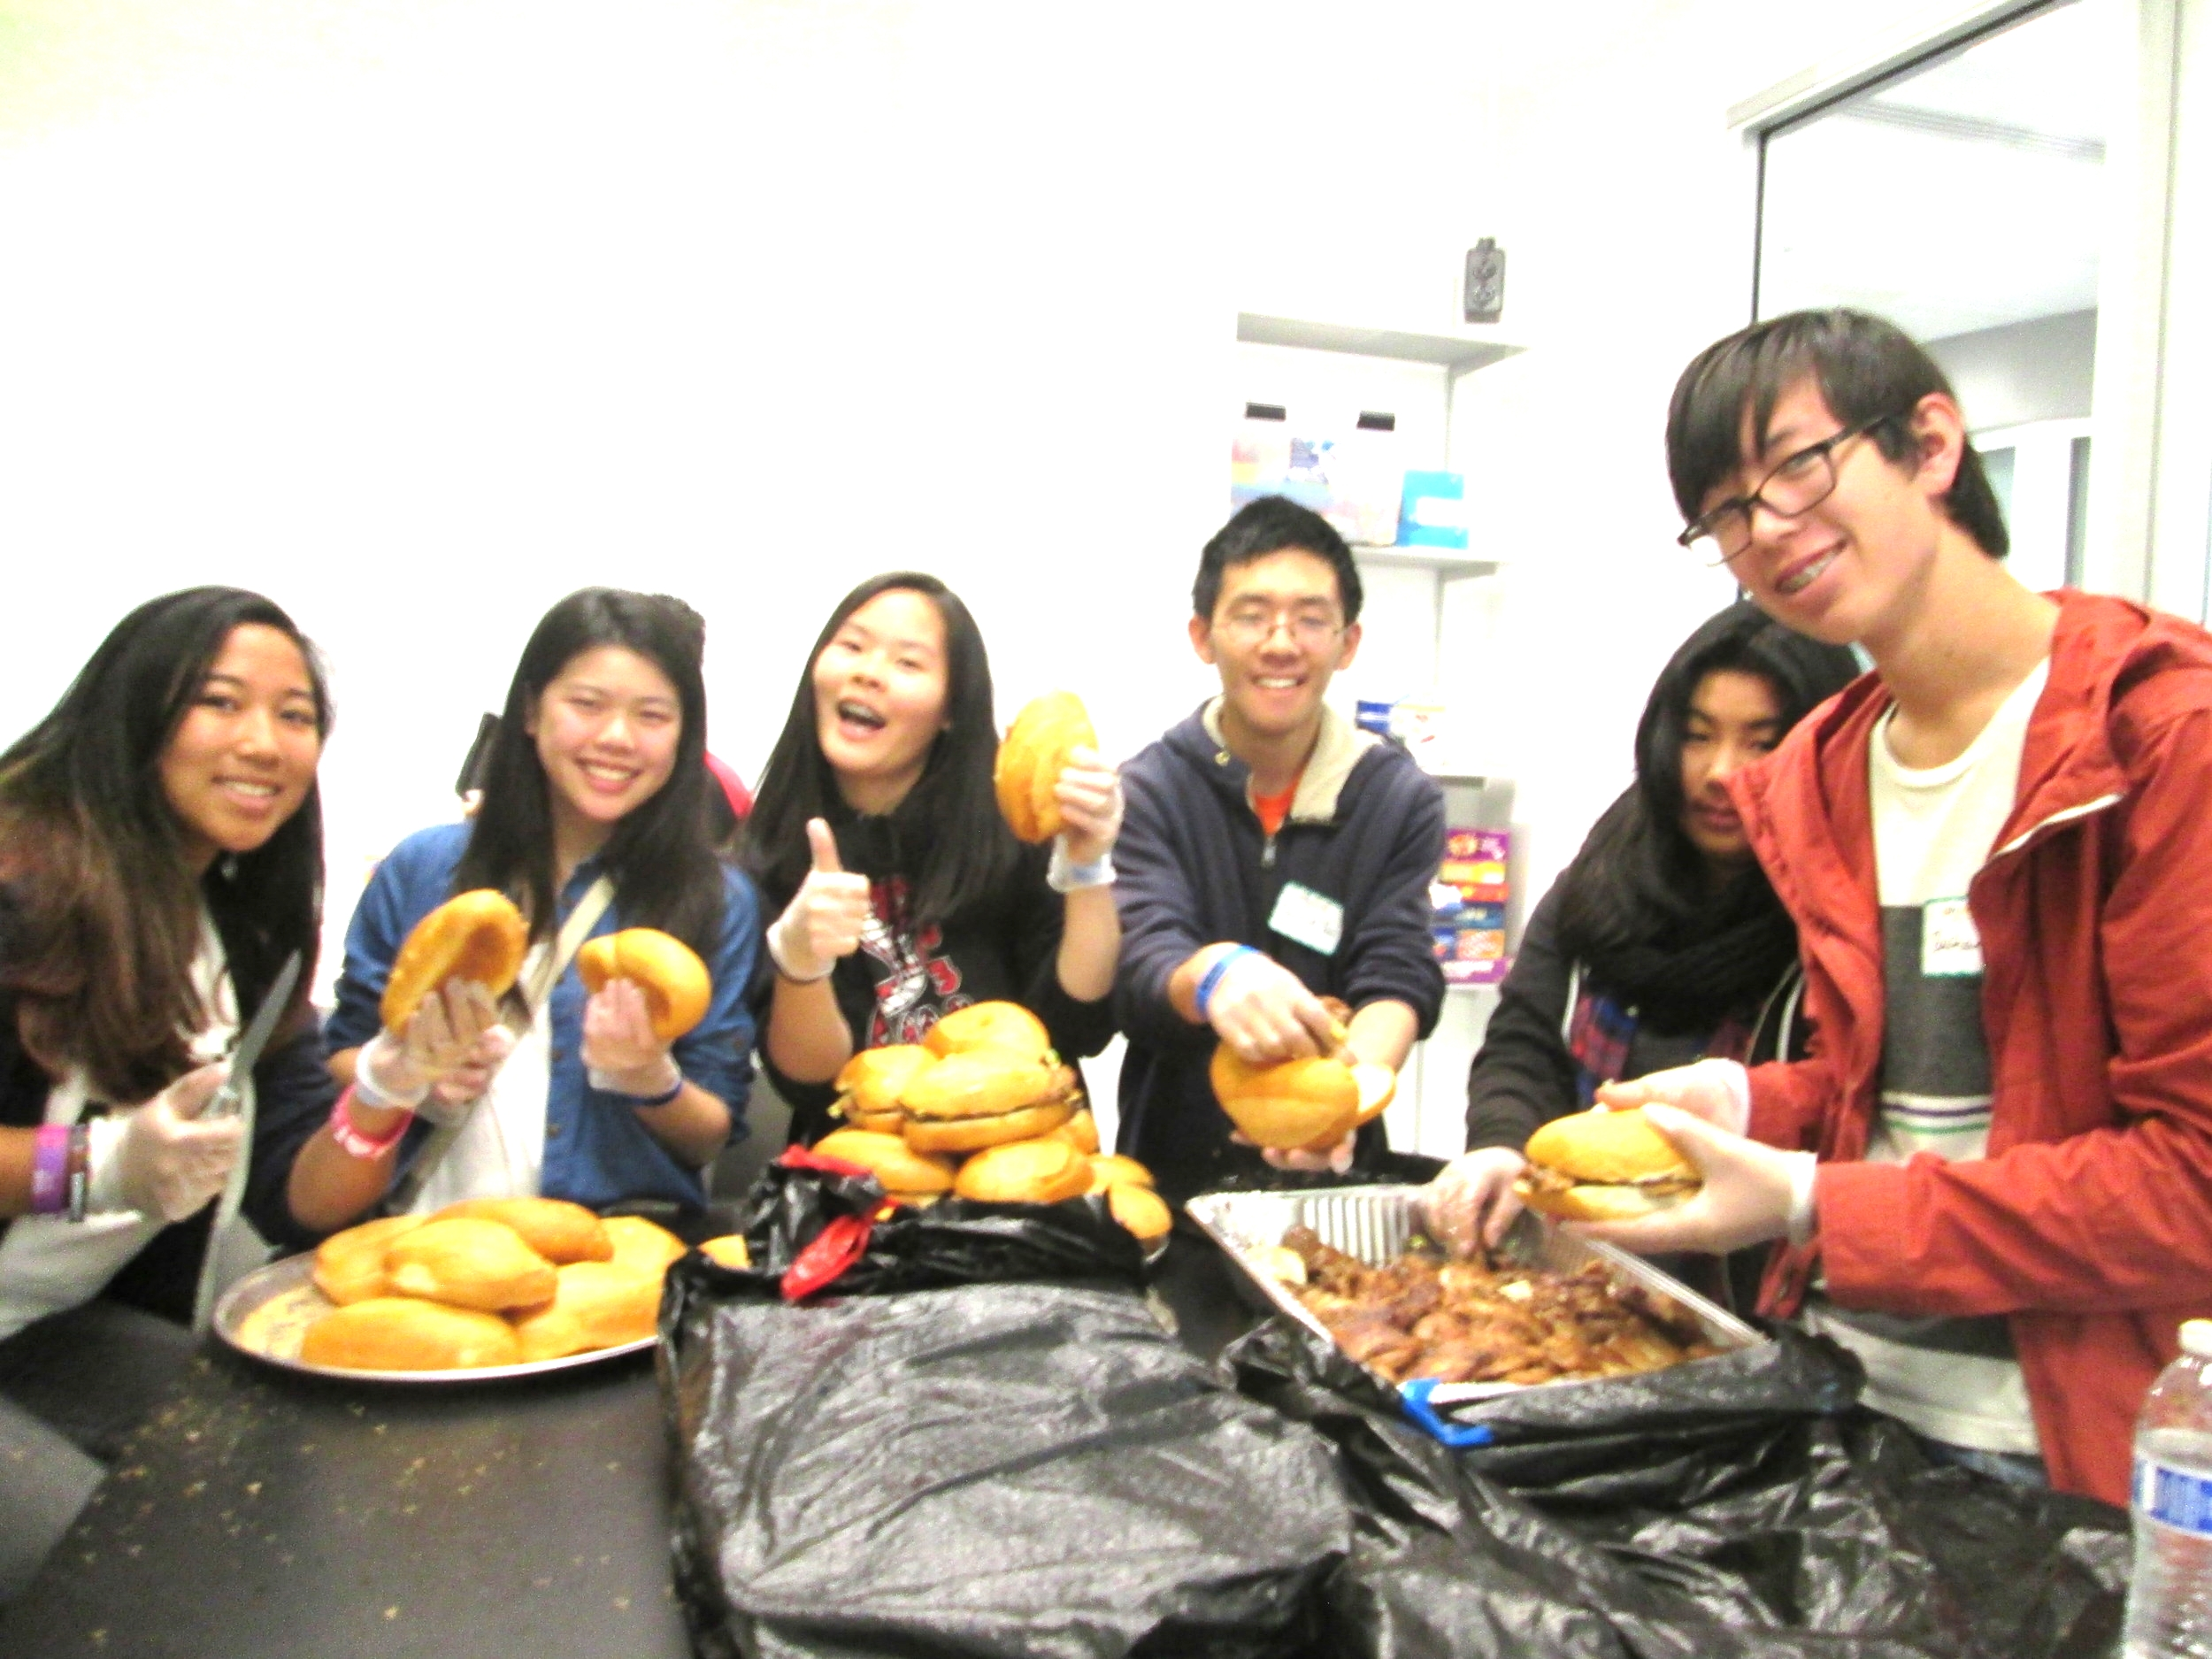 SFPL BAY Leaders fueling innovation by helping make lunch for hungry hackers